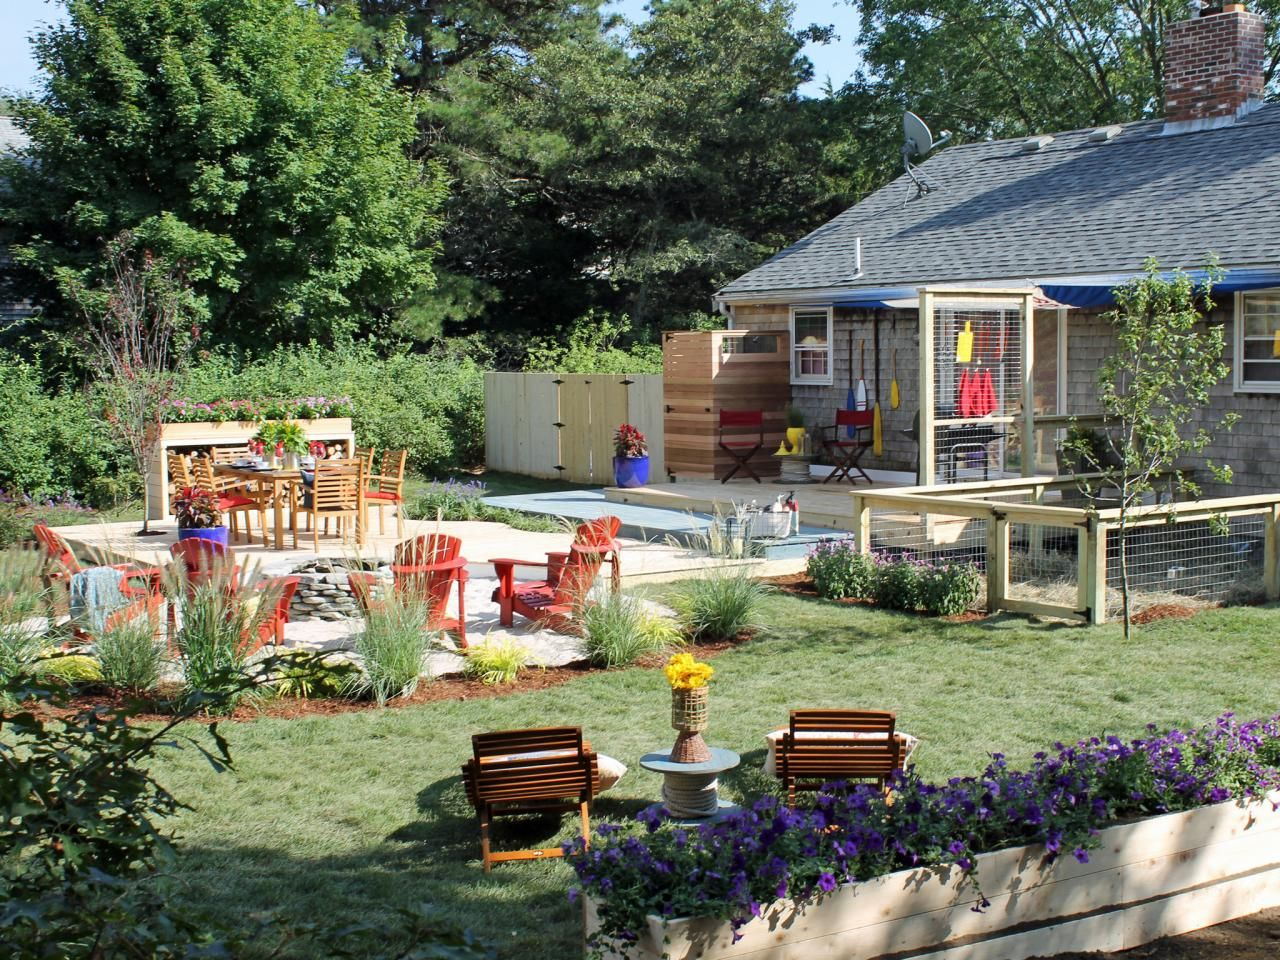 15 Before-and-After Backyard Makeovers | Backyard Ideas ...